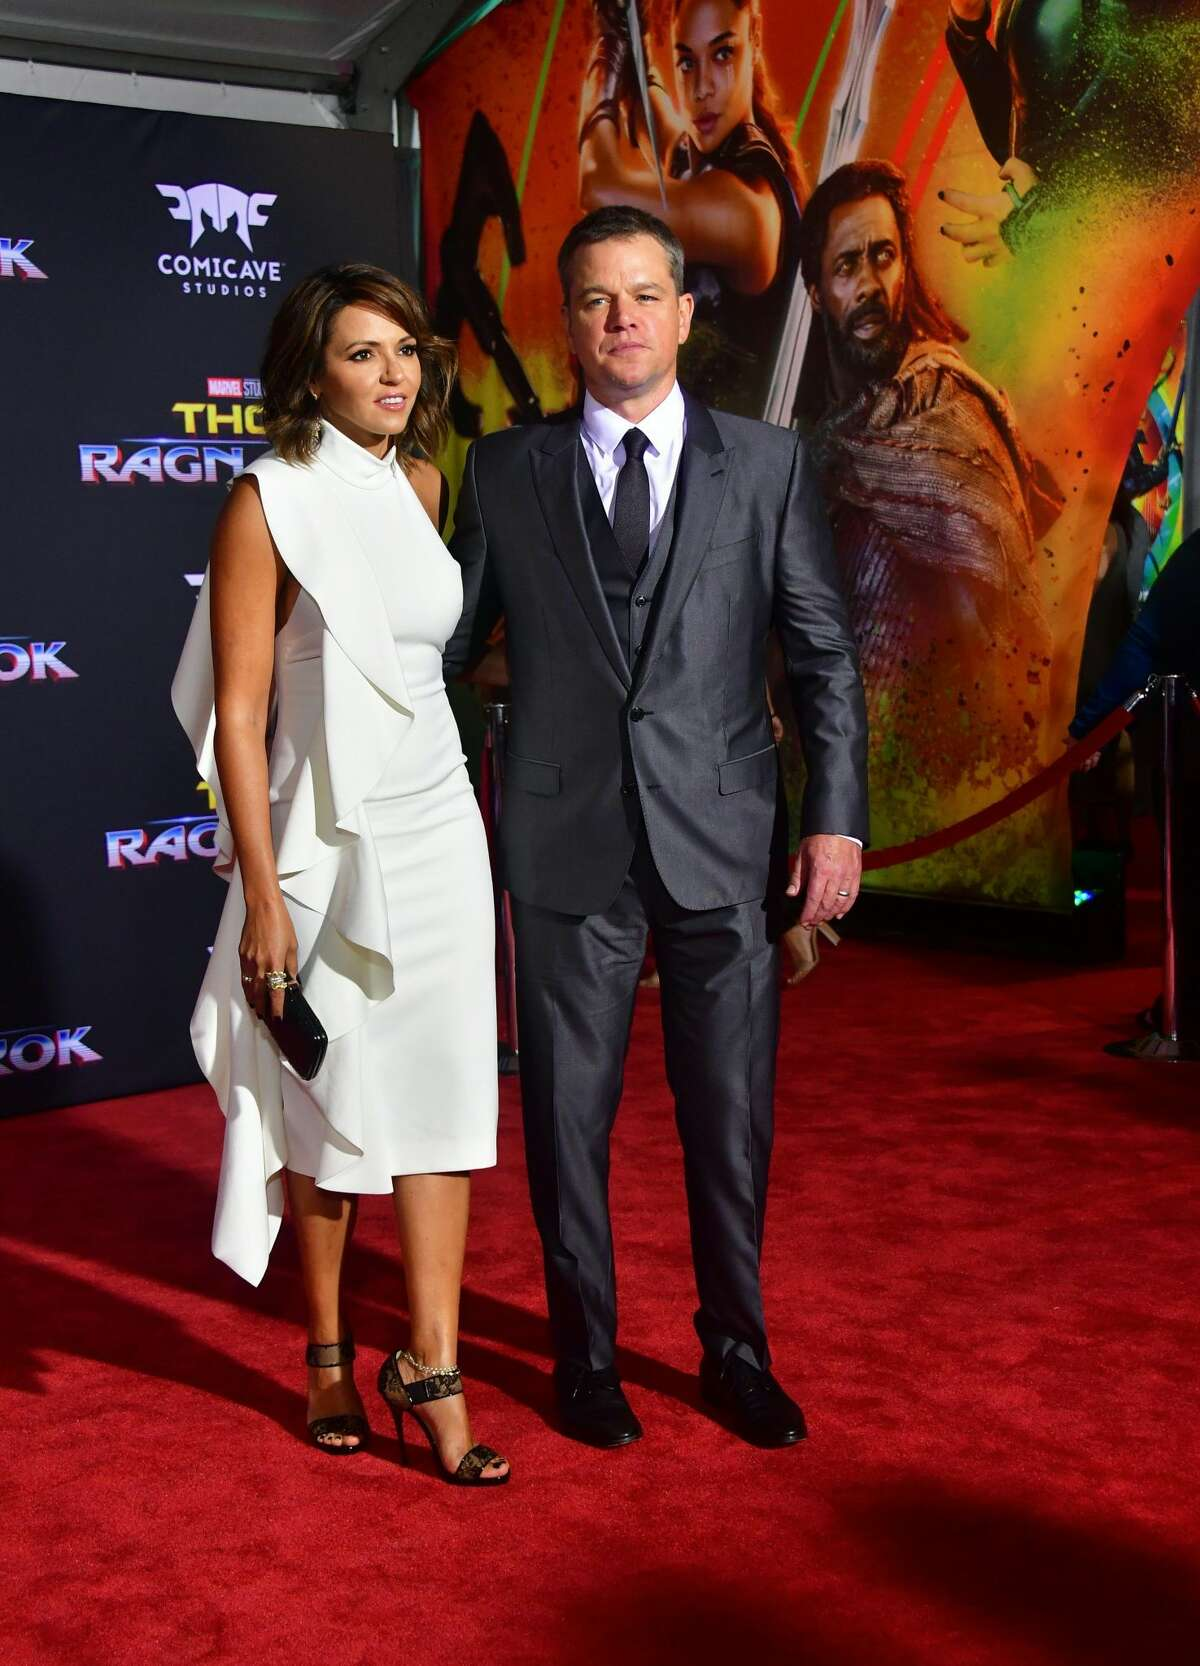 Actor Matt Damon and his wife Luciana Barrosso arrive for the premiere of the film